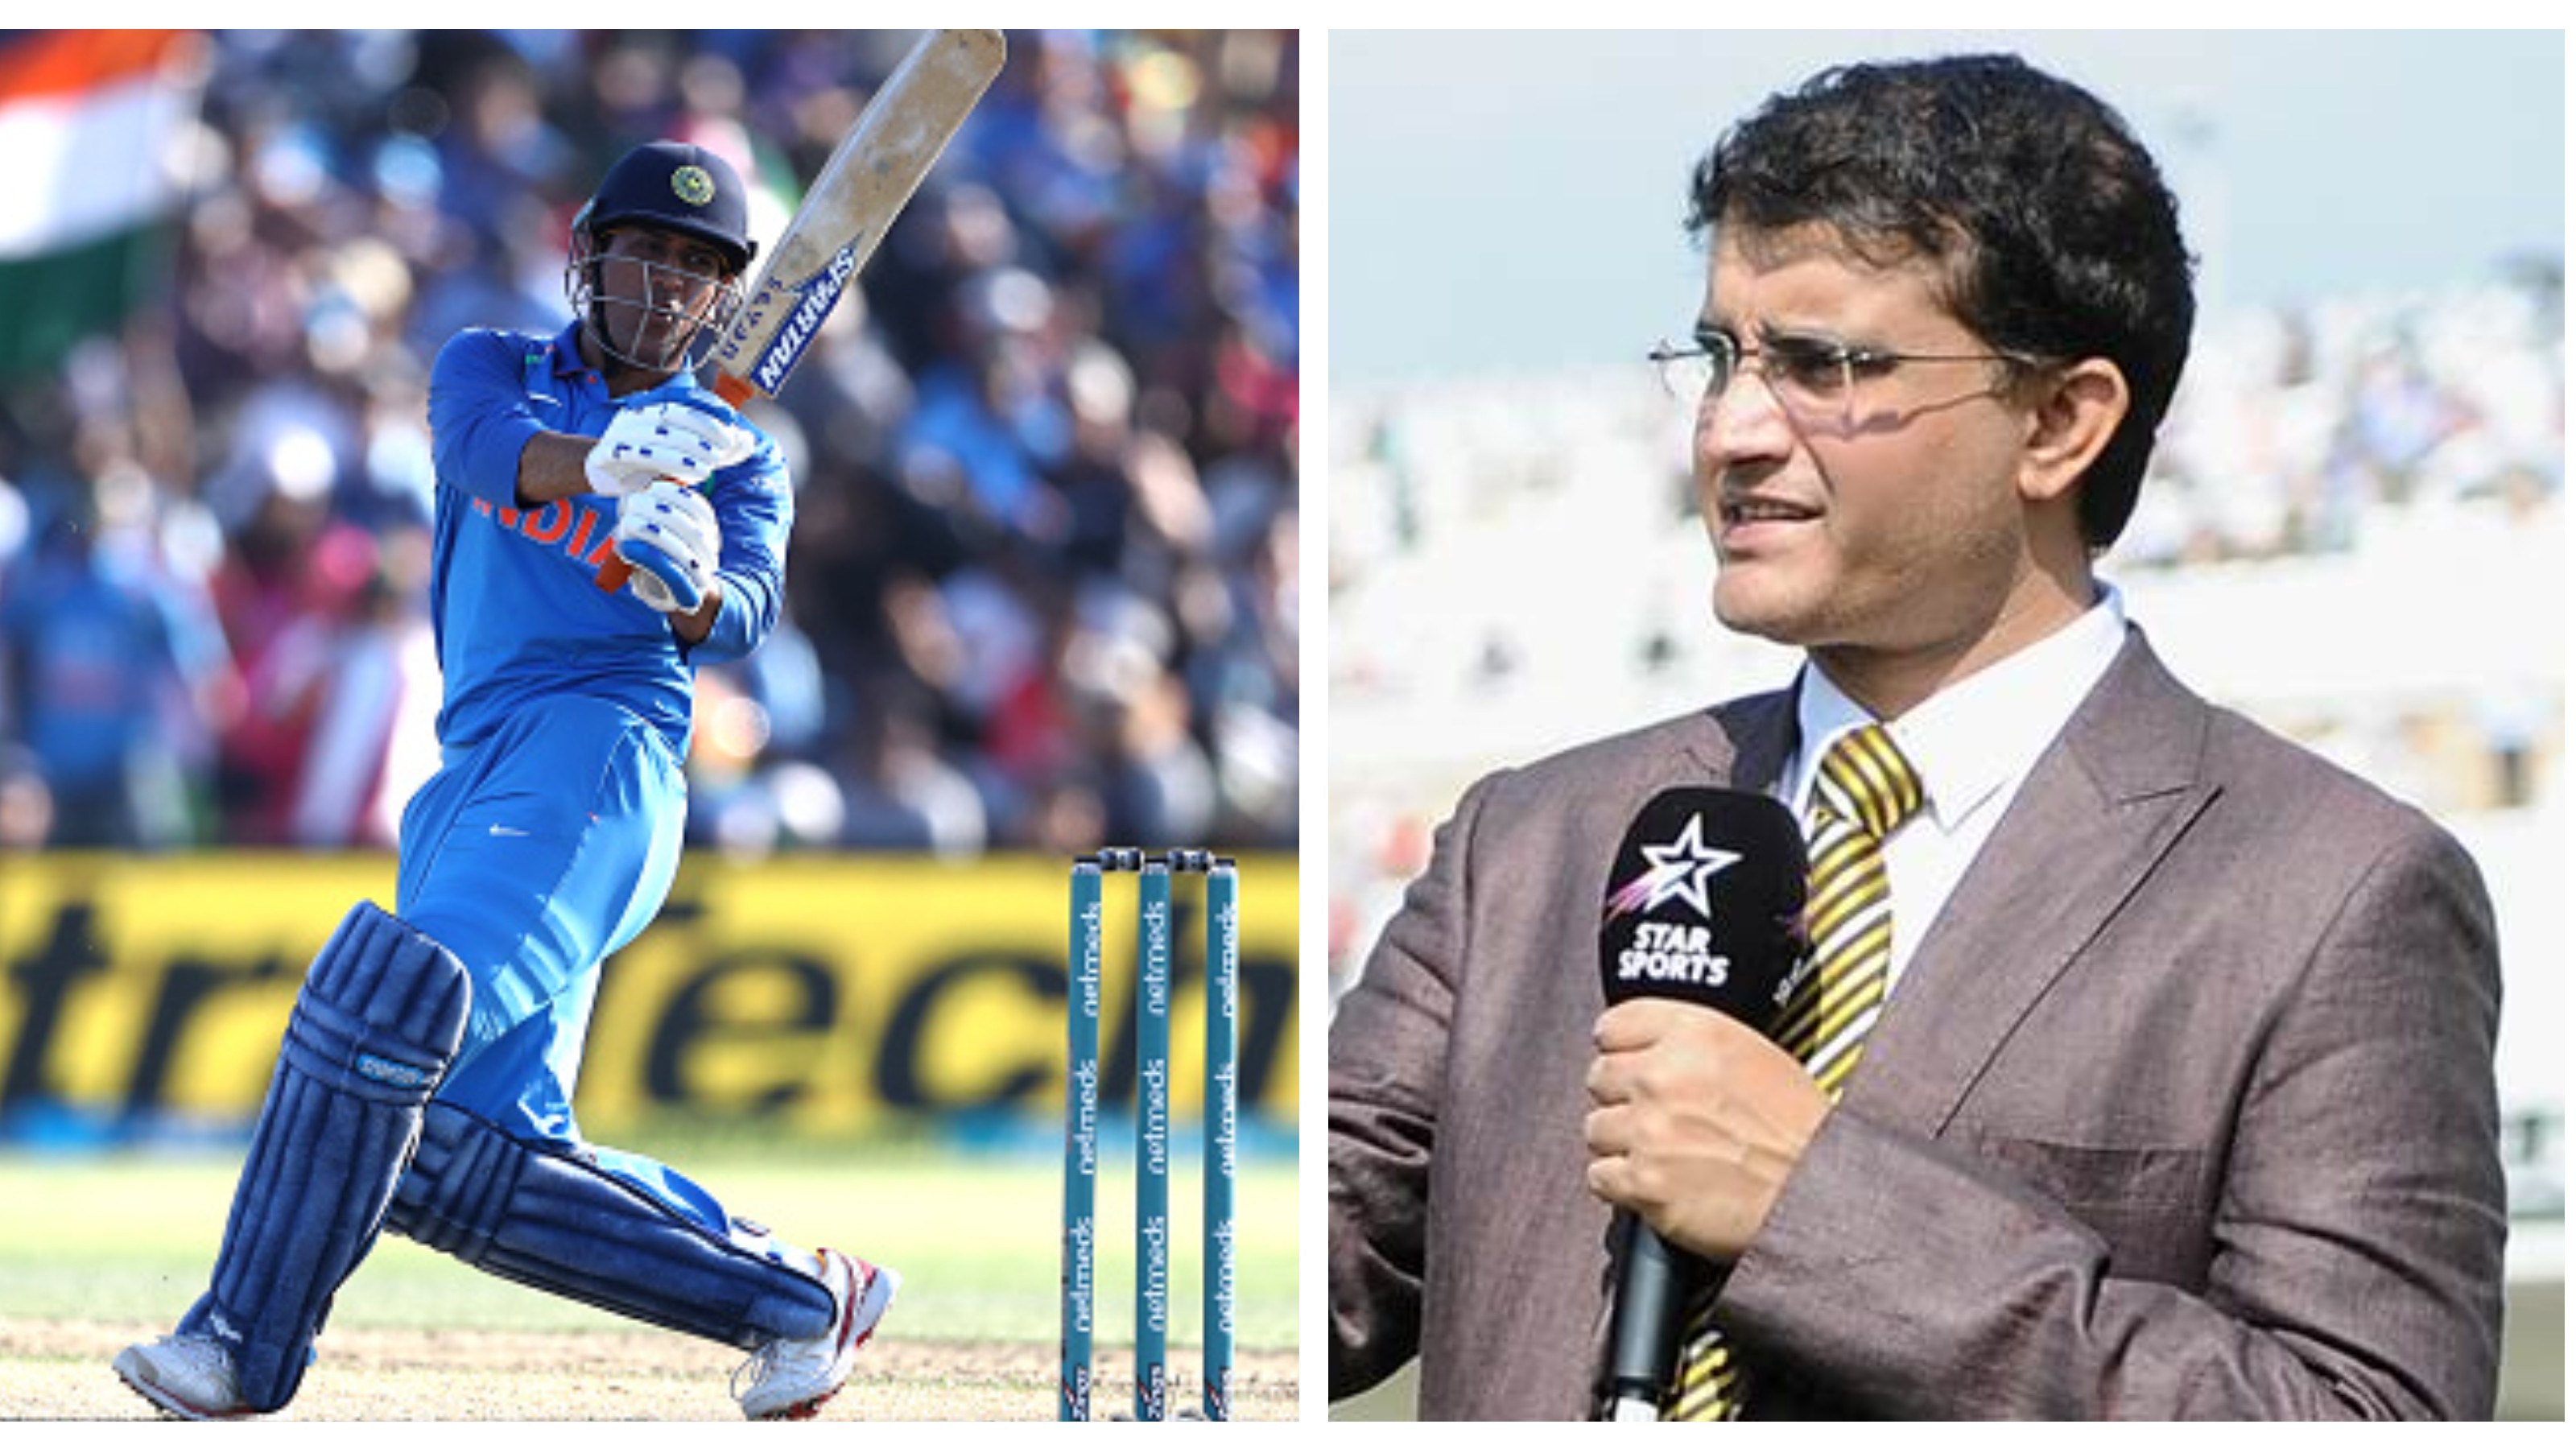 NZ v IND 2019: Ganguly finds Dhoni's return to form as the biggest positive for India from the Trans-Tasman tour